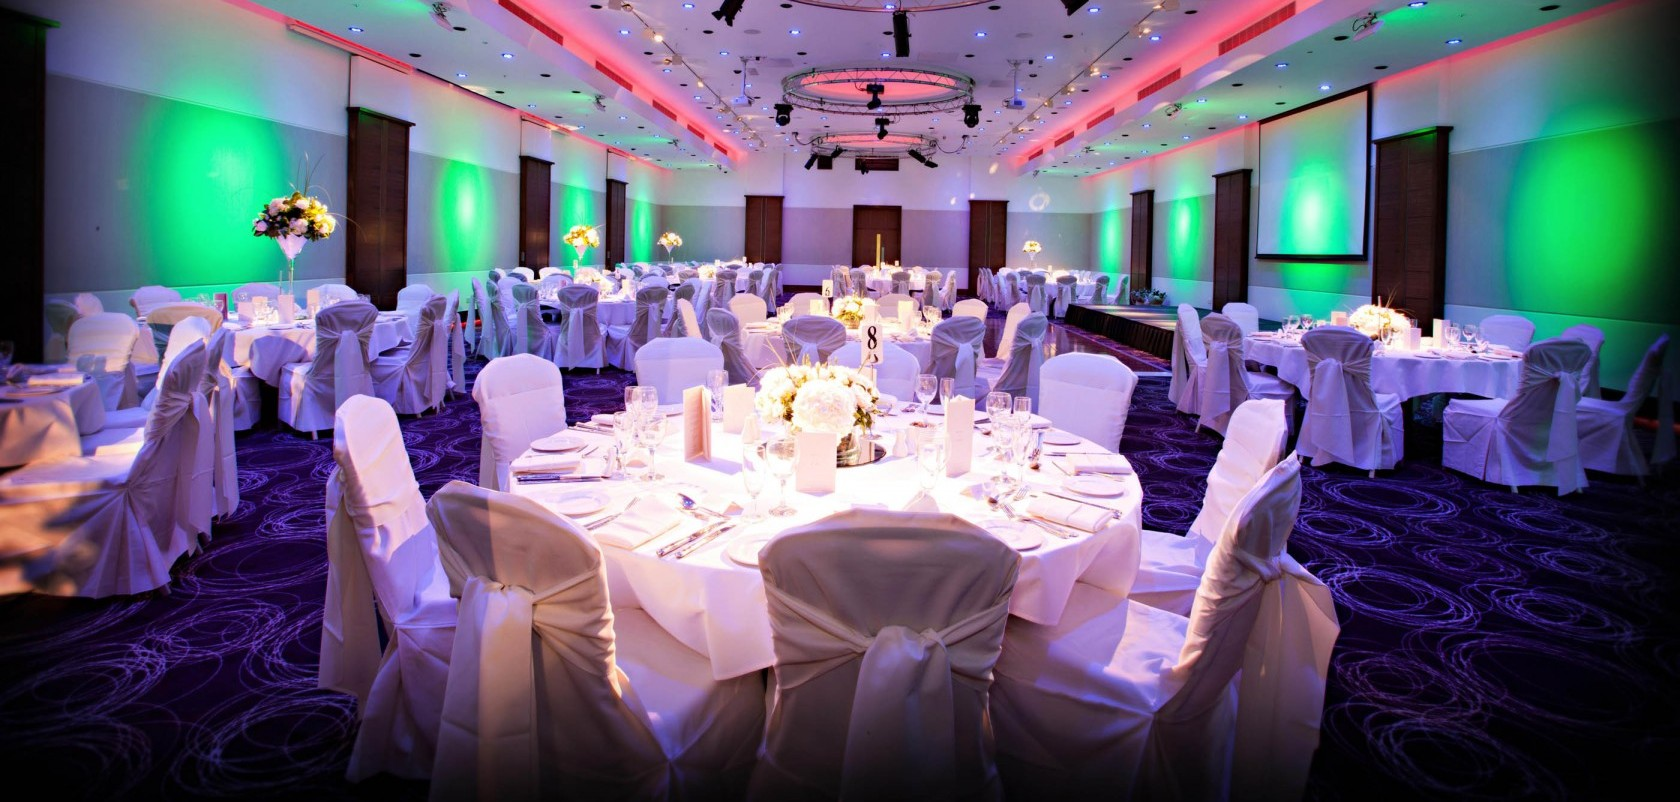 Seating arrangements: What's the best for your event?